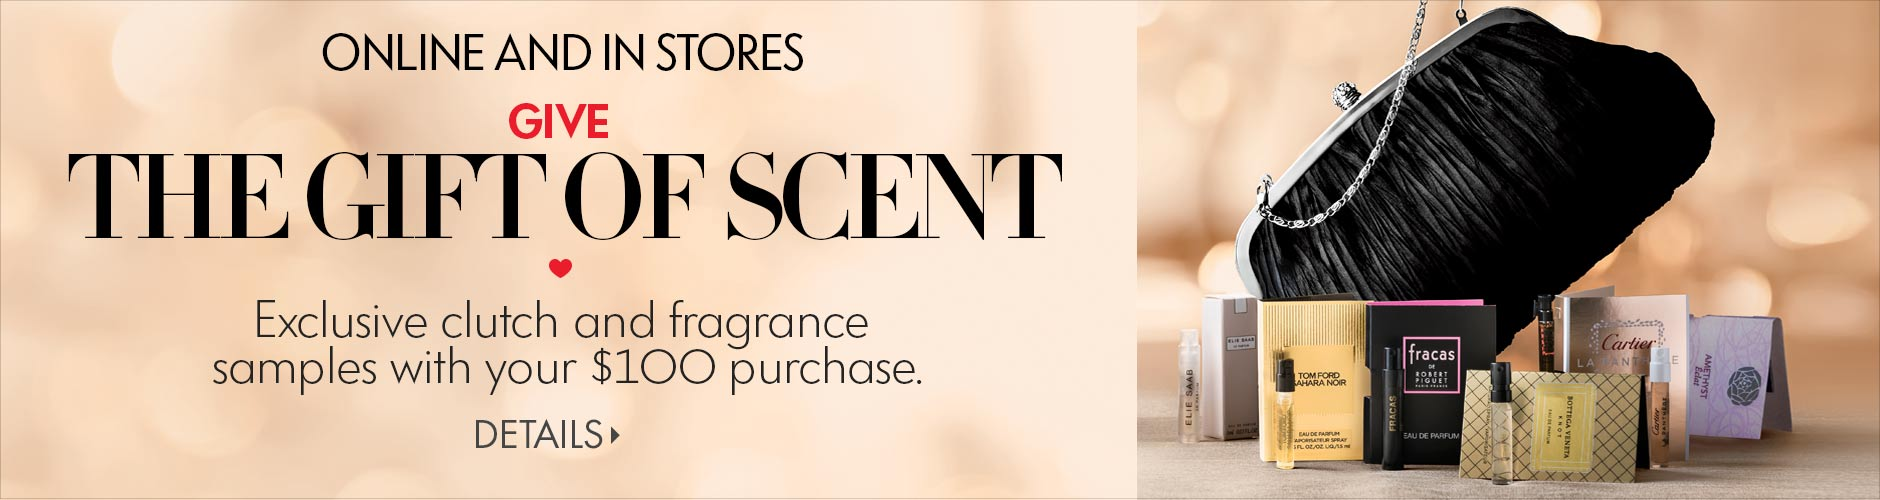 Give The Gift of Scent